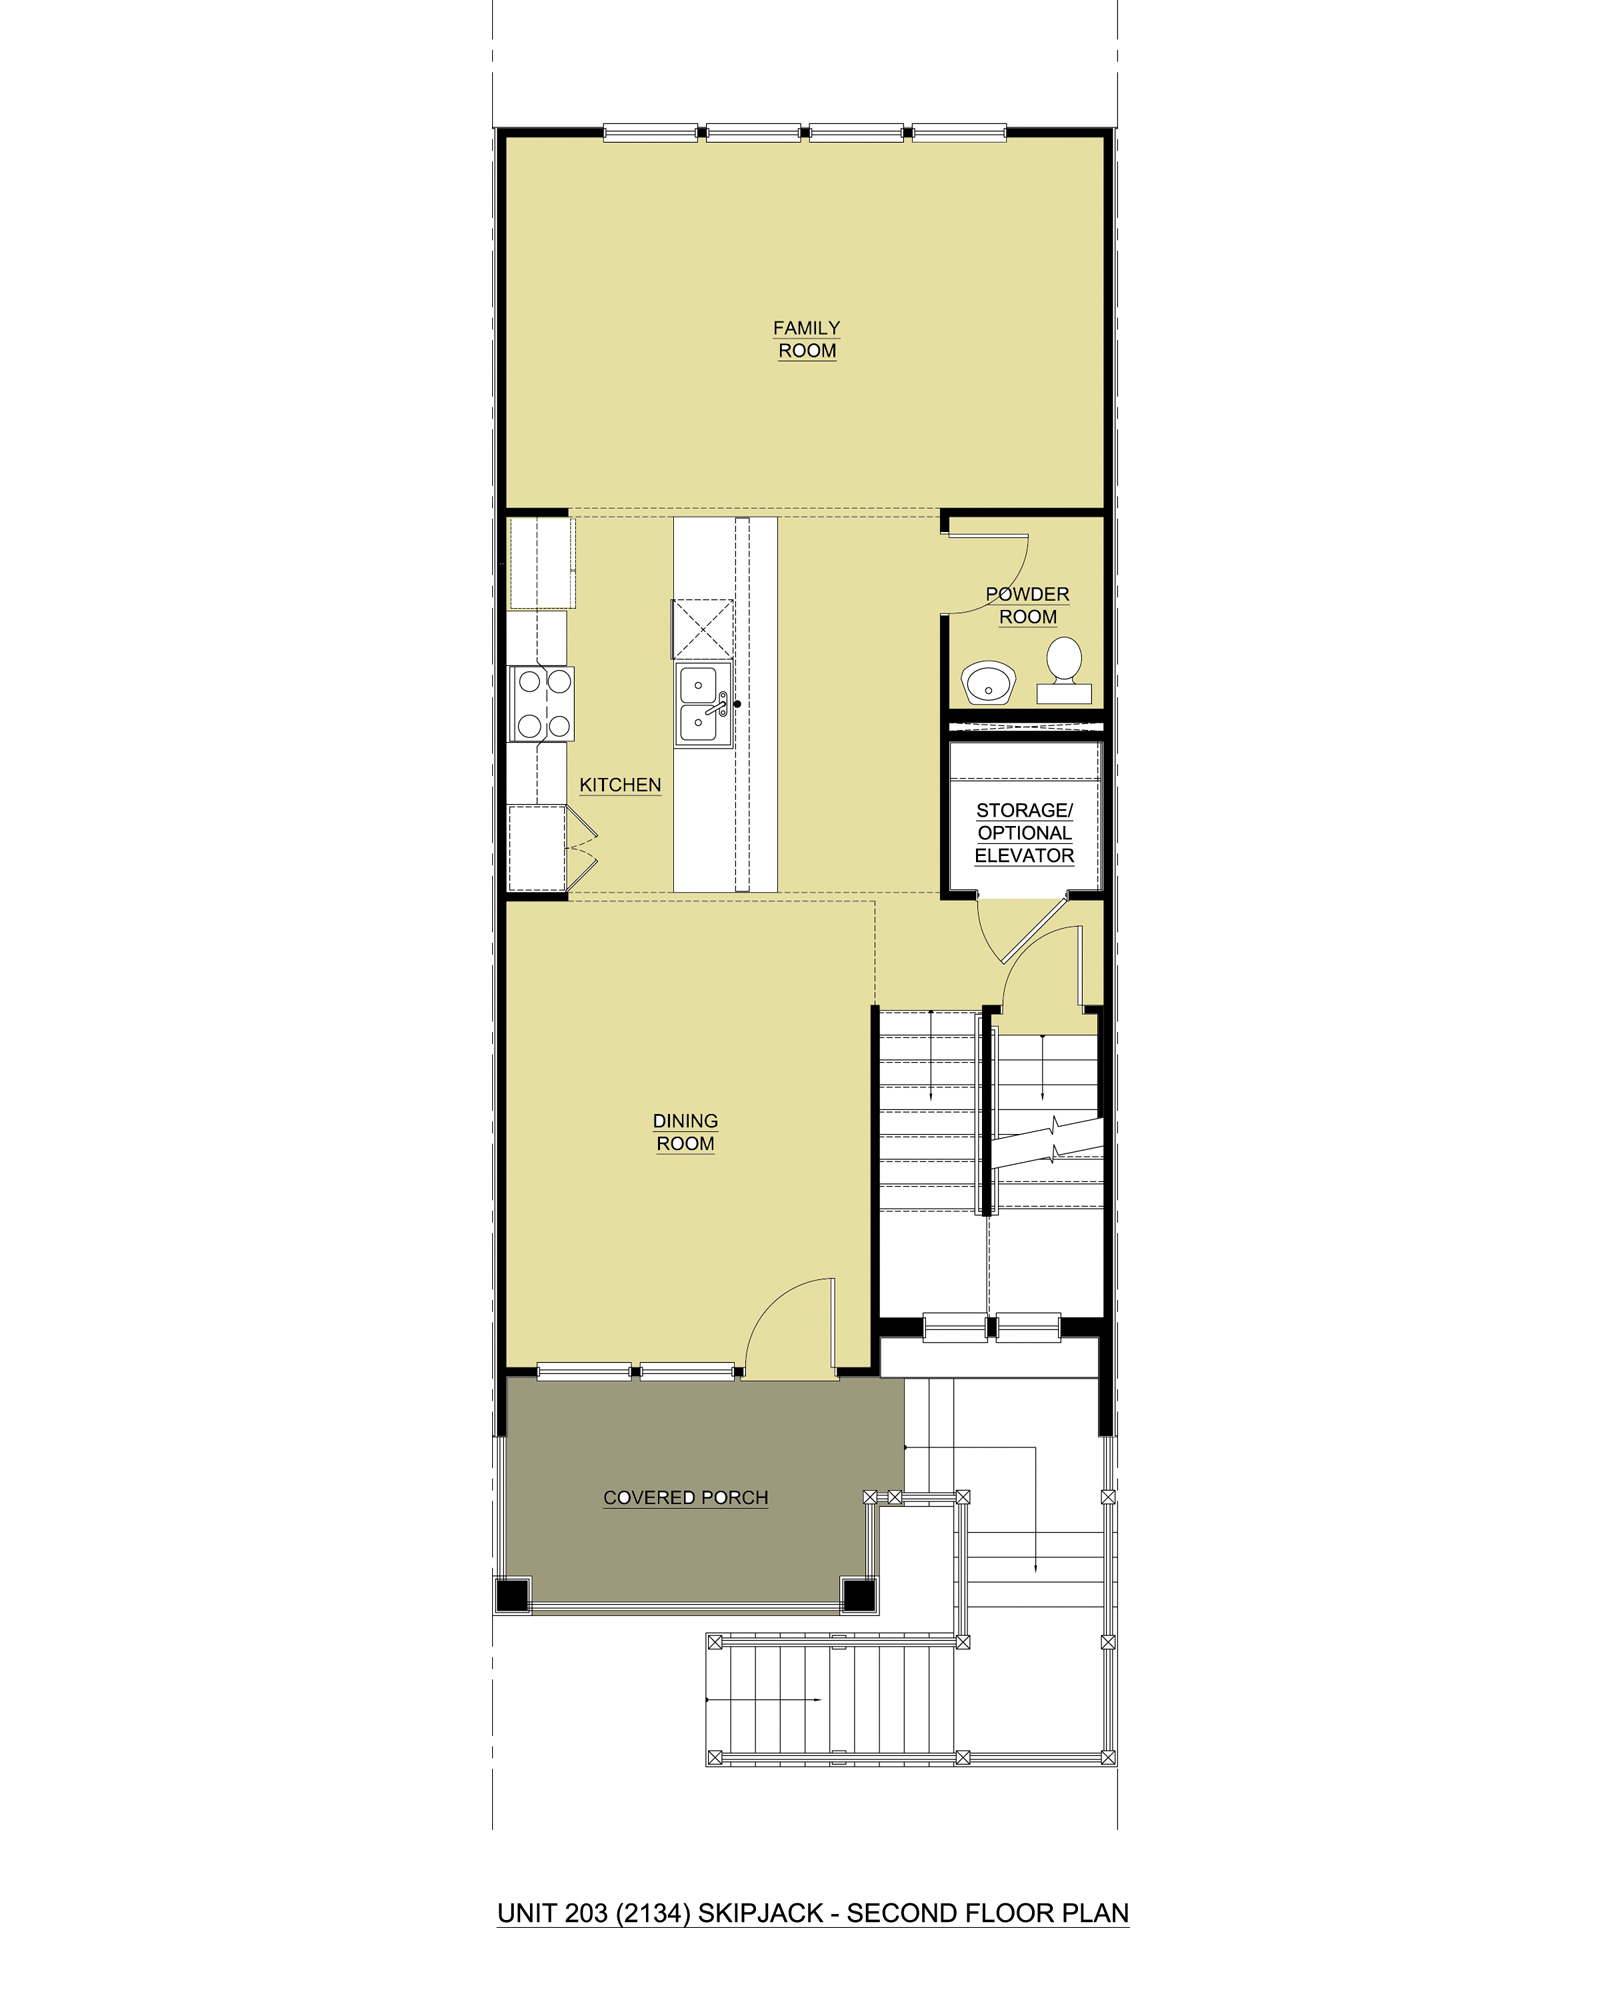 Skipjack w/ Loft, Indian Shores - Second Floor